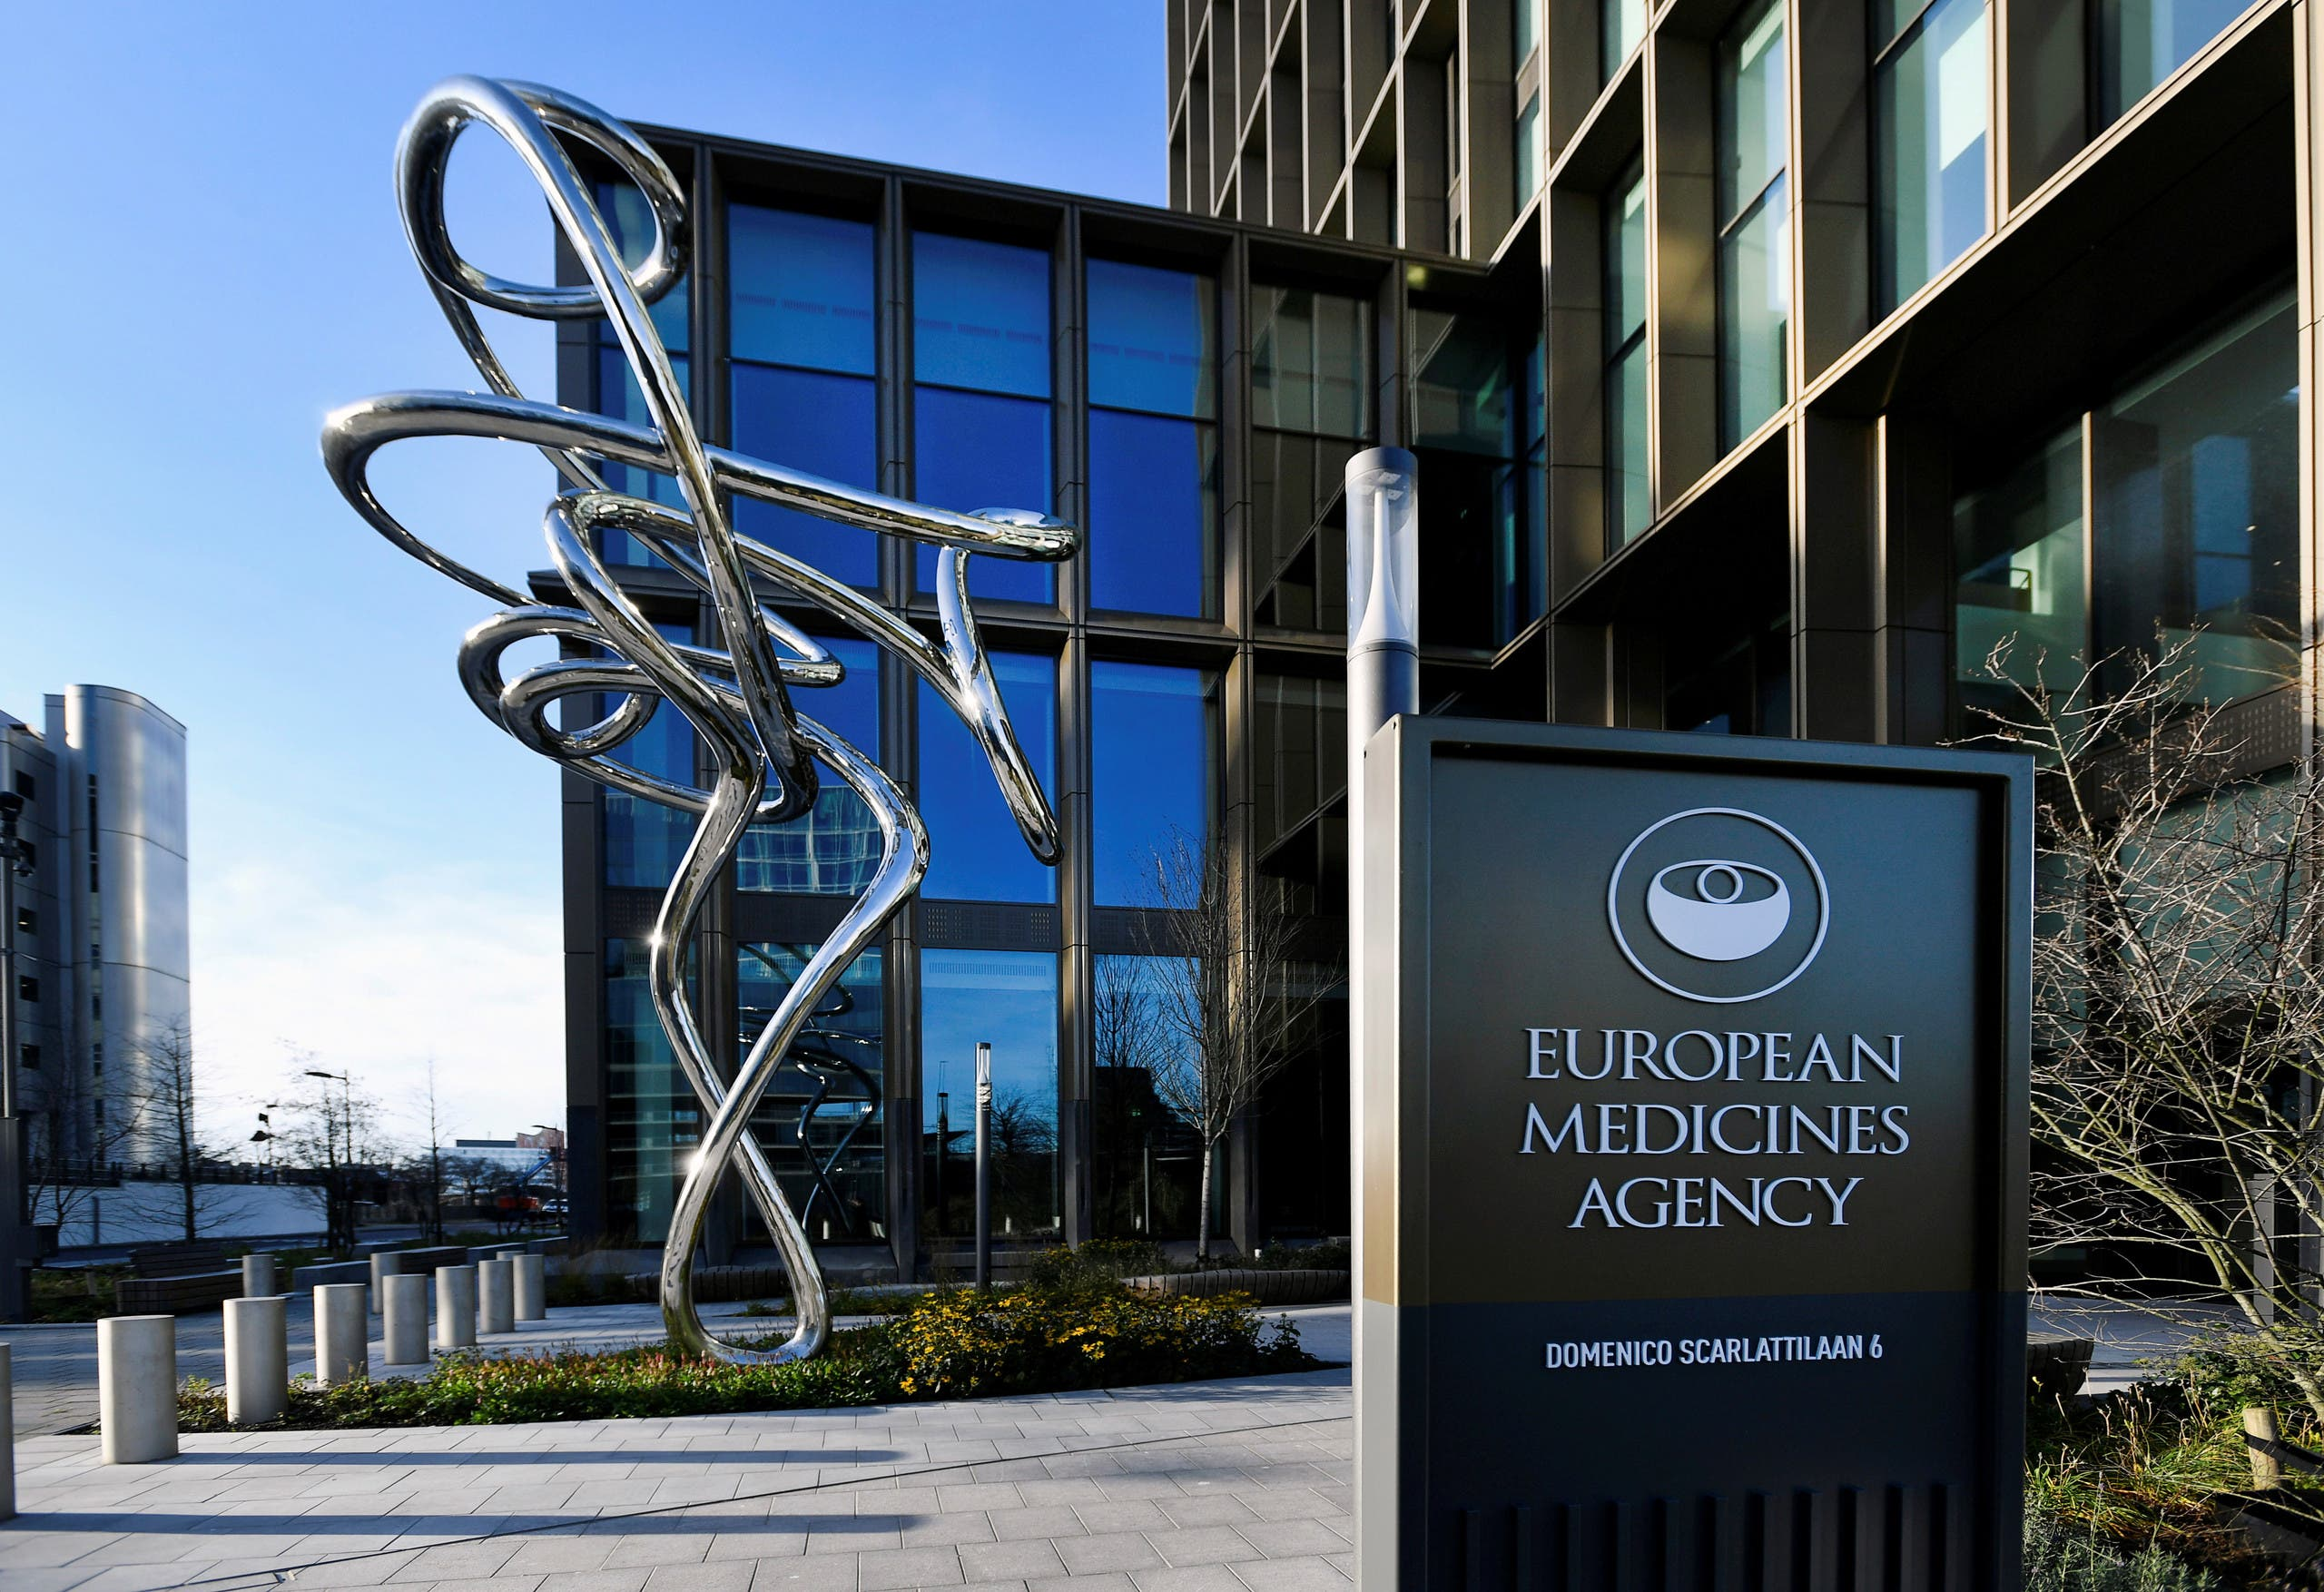 The exterior of EMA, European Medicines Agency is seen in Amsterdam, Netherlands December 18, 2020. (Reuters)